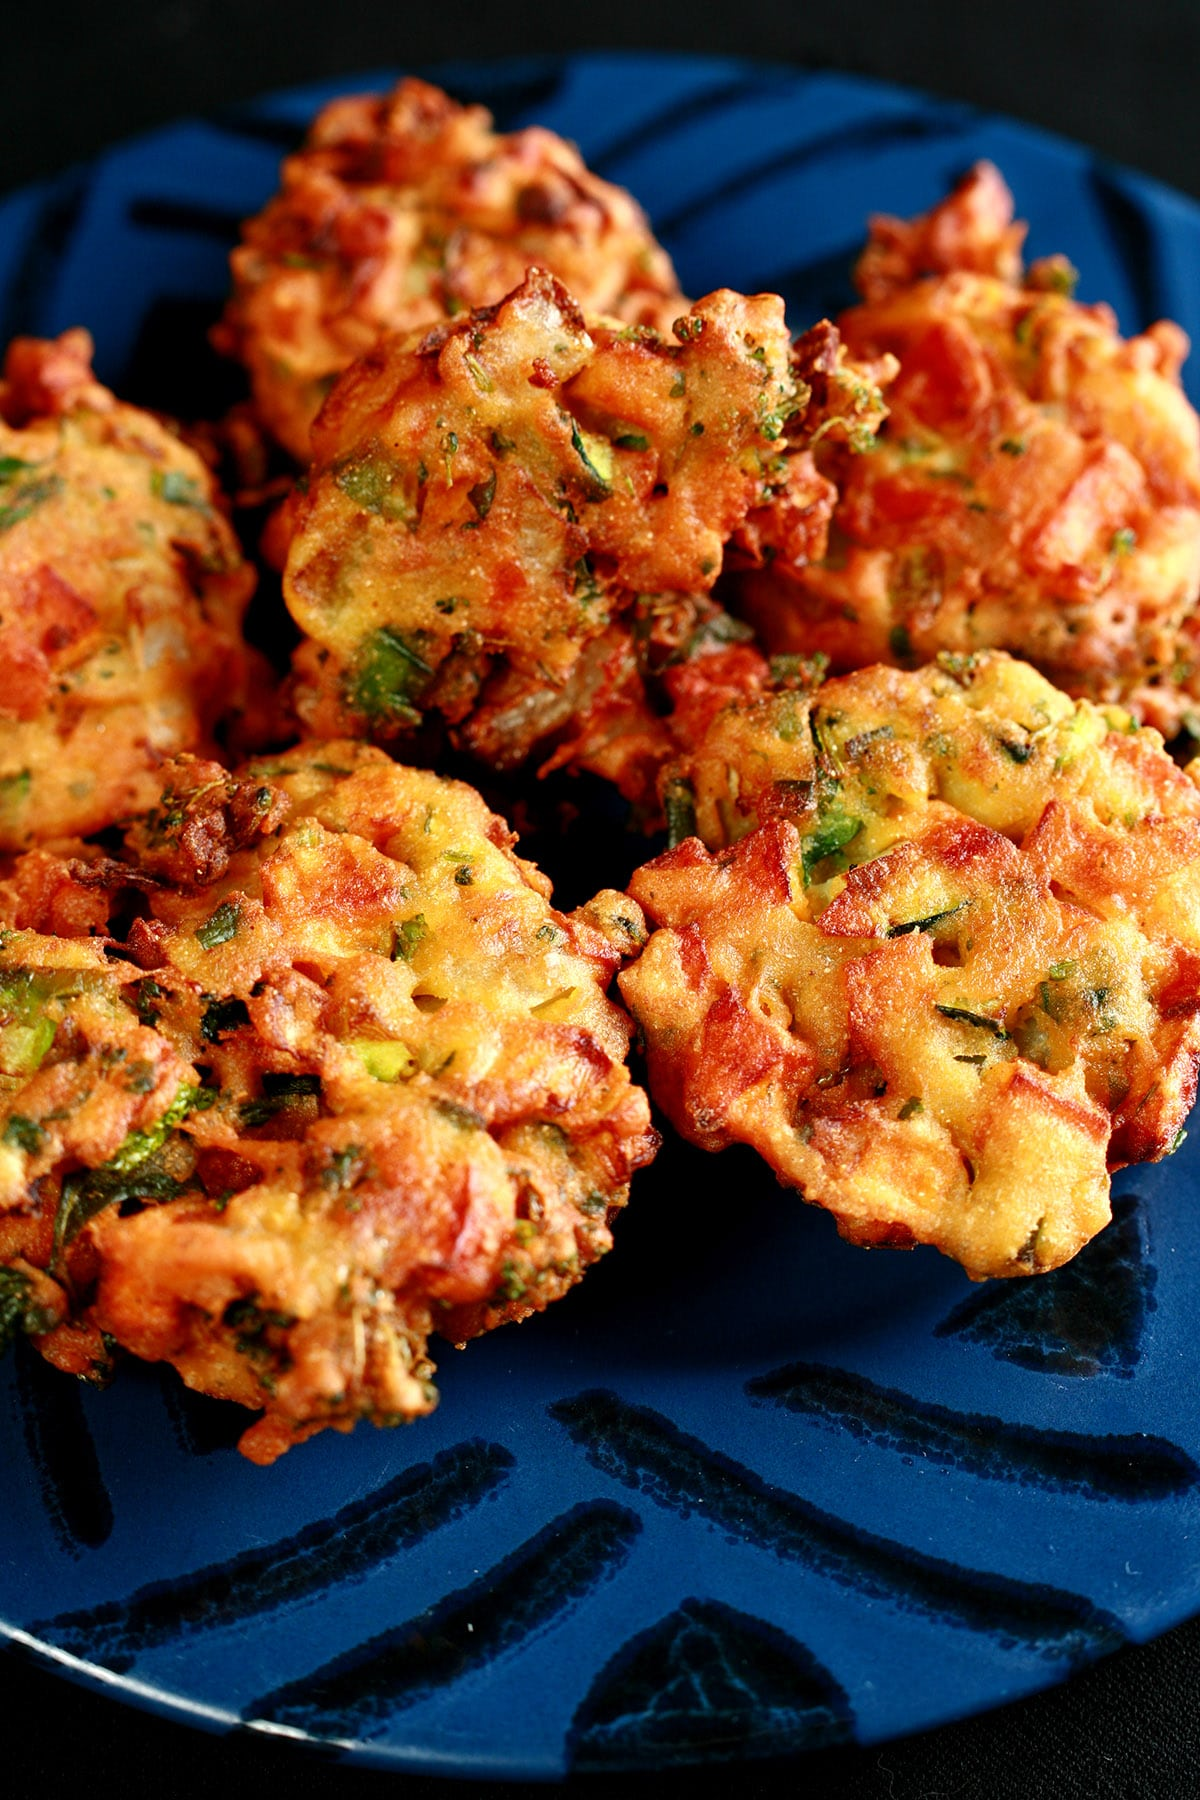 A close up view of mixed veggie pakora. They are little patties of sweet potatoes, onions, broccoli, cilantro, and more, in a curried batter, deep fried.